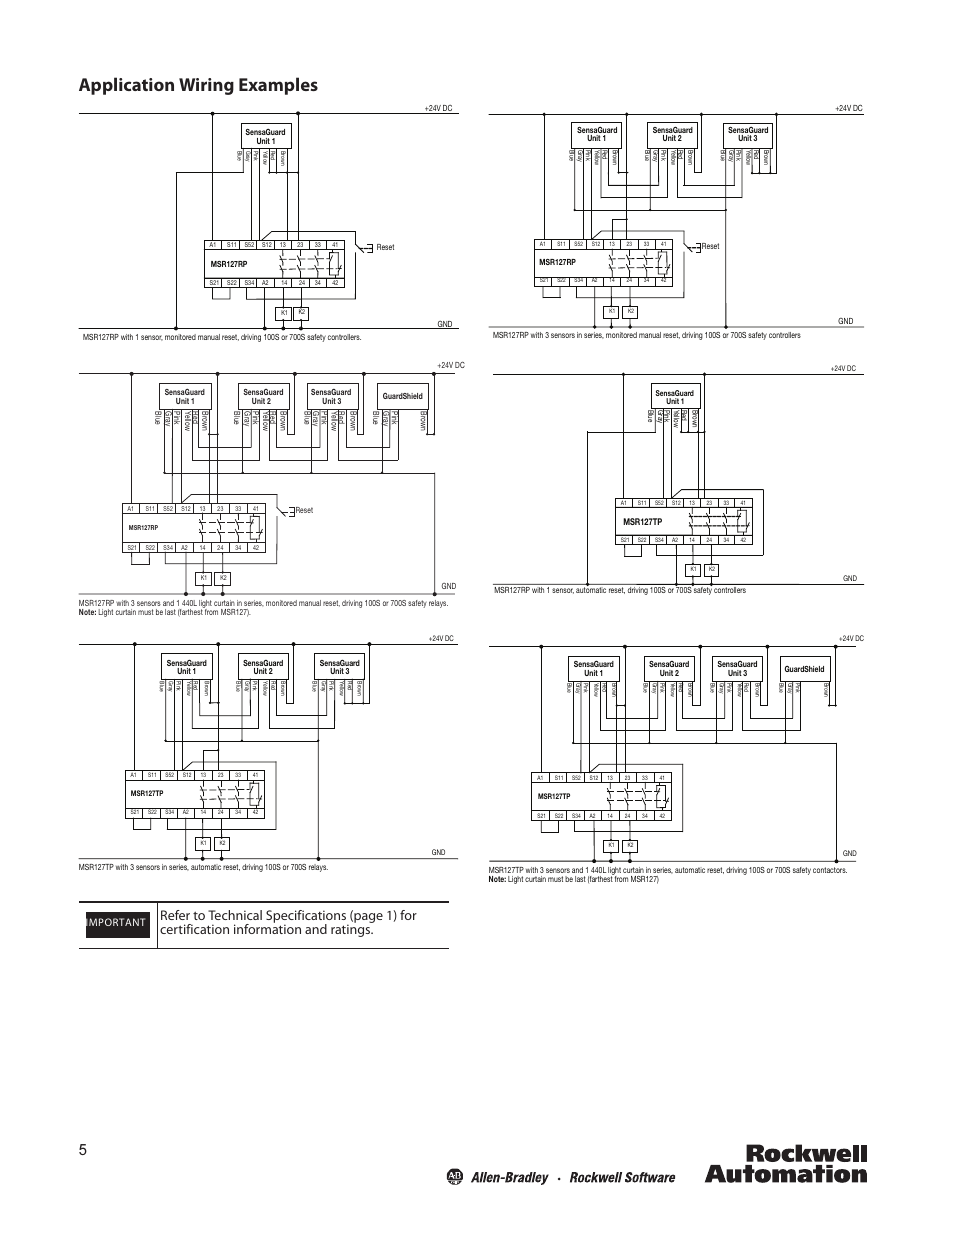 Safety Relay Wiring Diagram Msr127tp Pilz Application Examples Rockwell Automation 440n Sensaguard 18